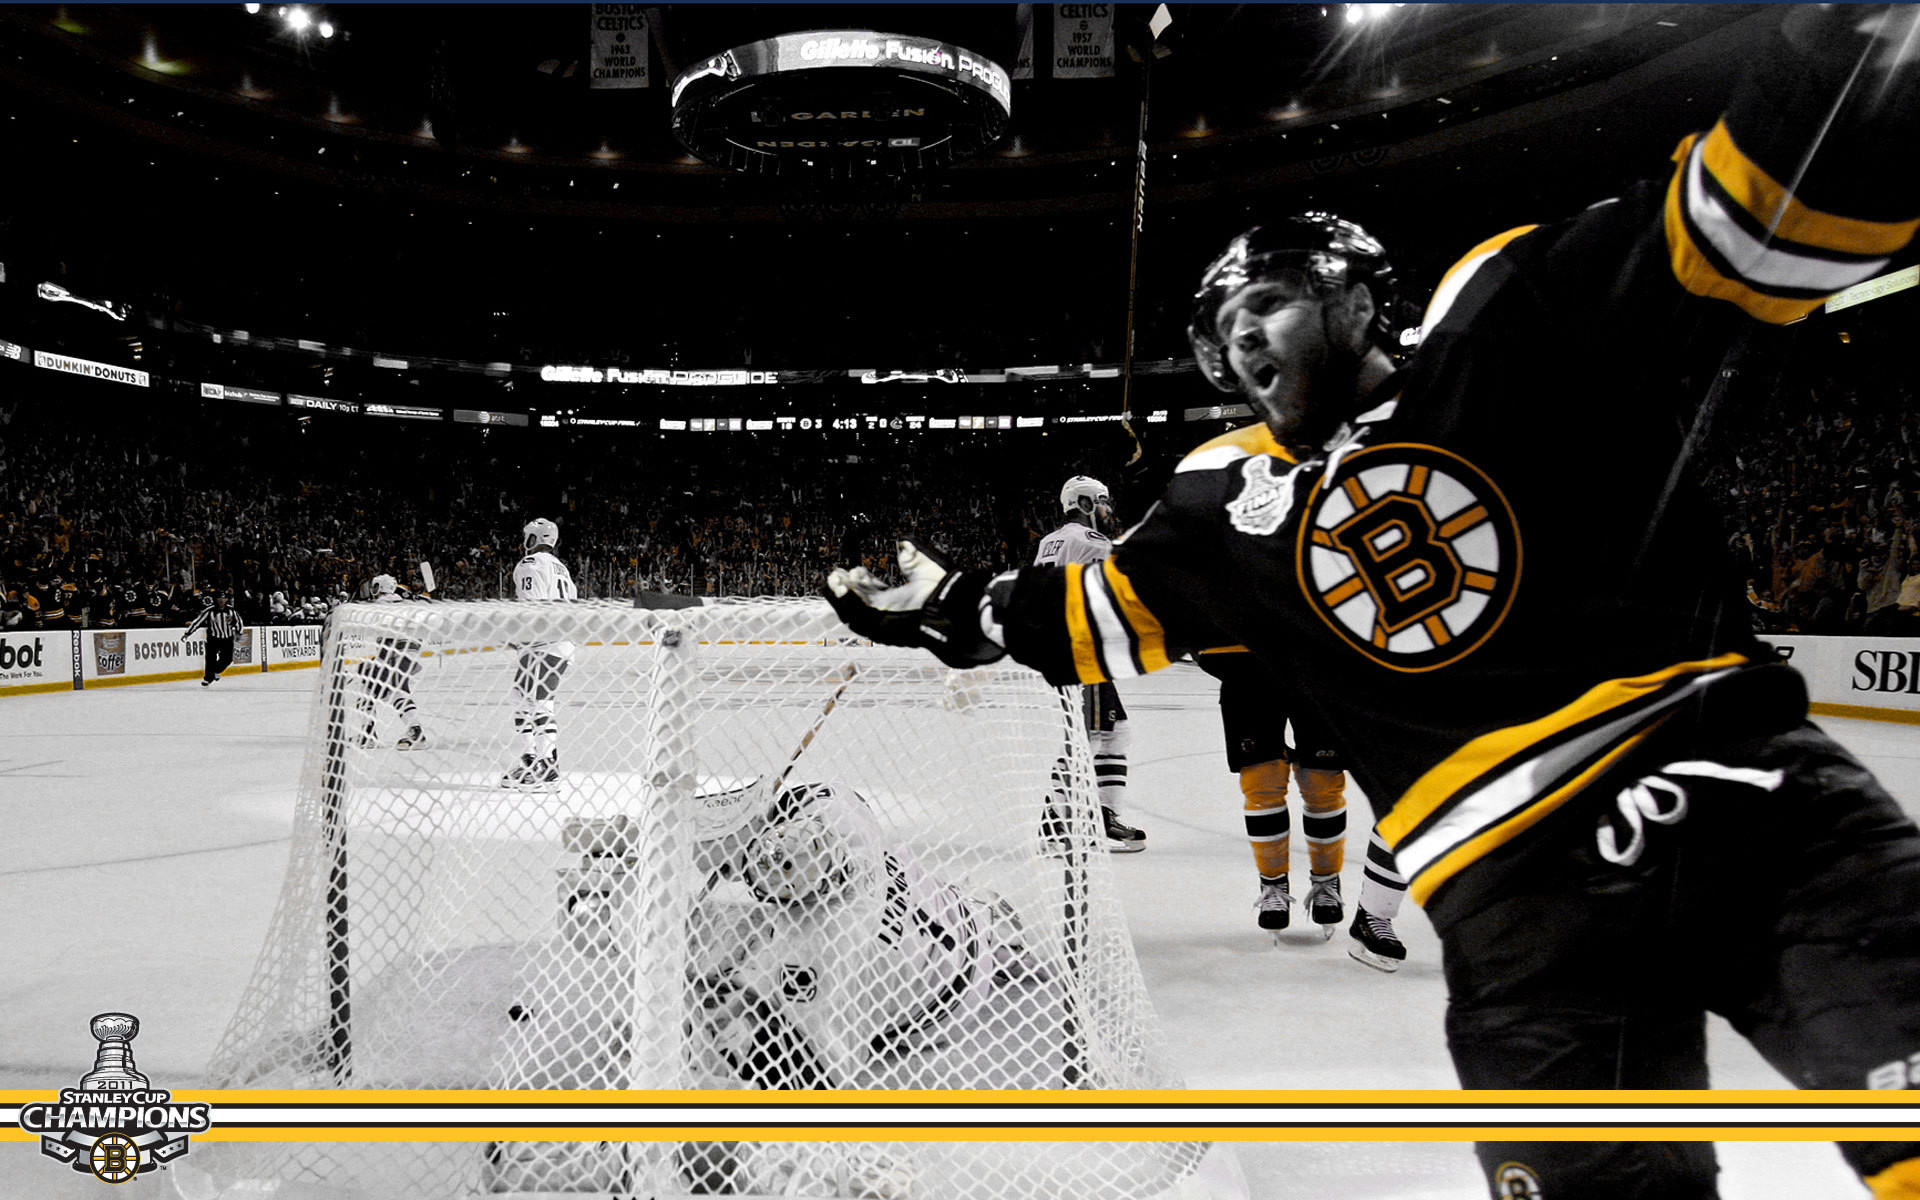 Boston Bruins wallpaper containing an ice hockey and an ice hockey rink  entitled Stanley Cup Champions